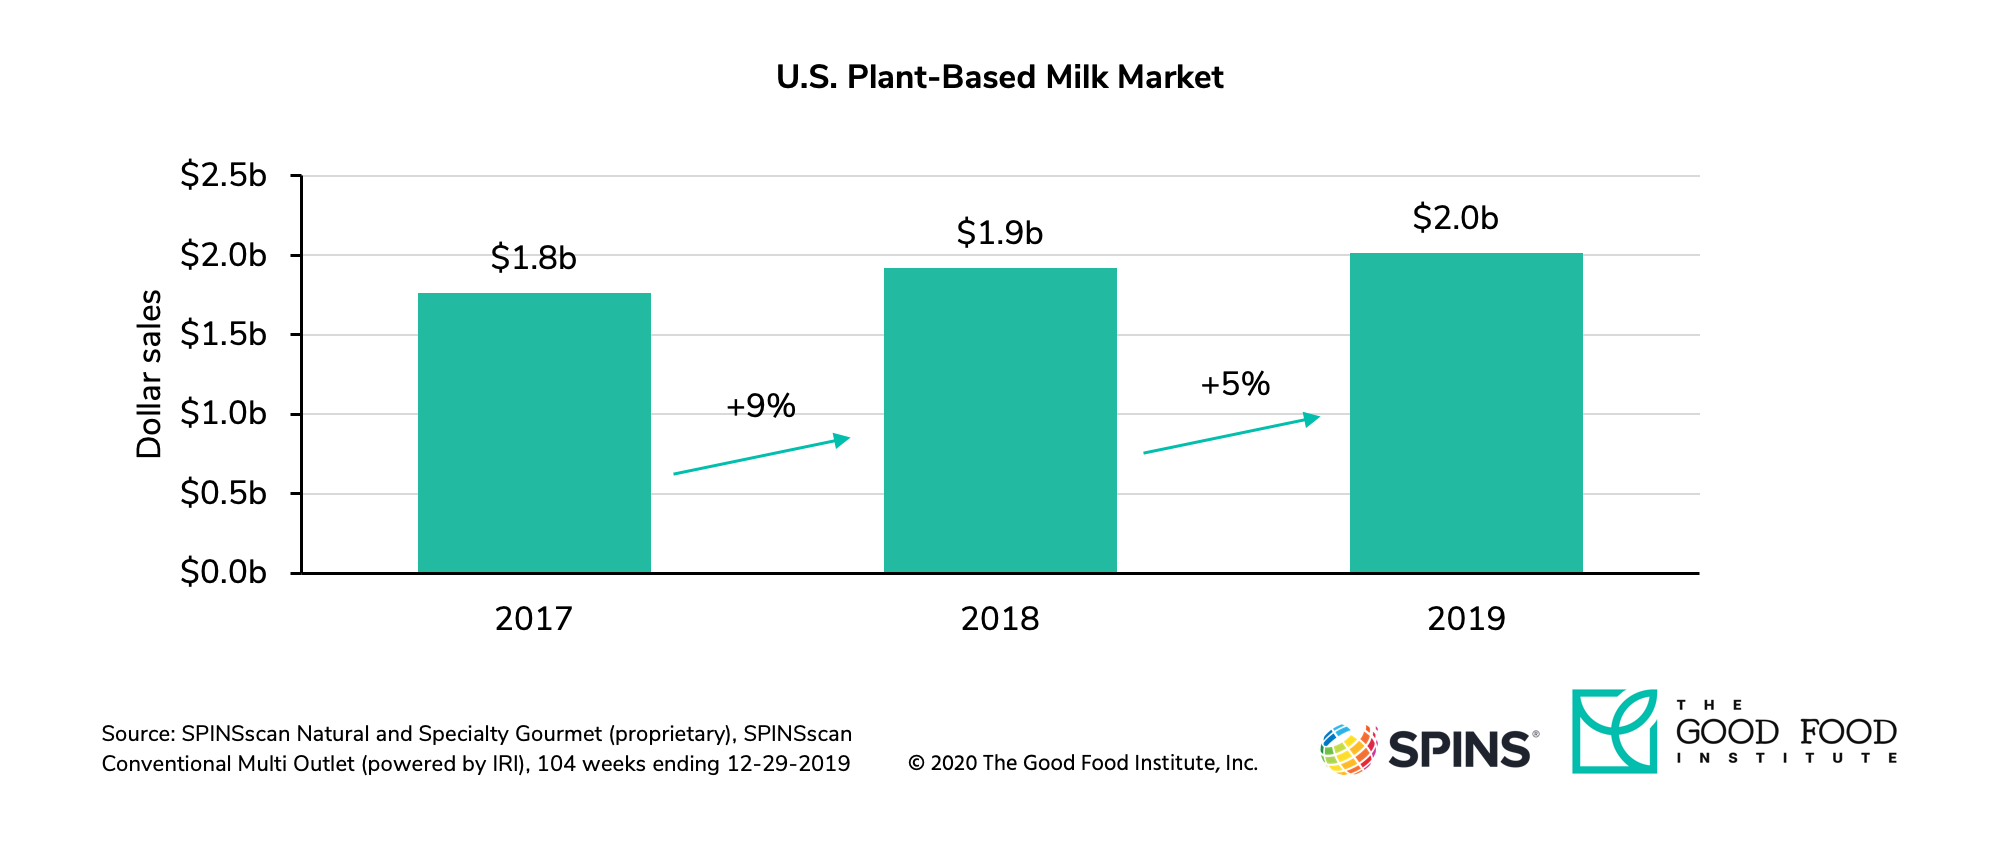 U.S. retail sales for dairy-free milk increased to $2 BN in 2019.